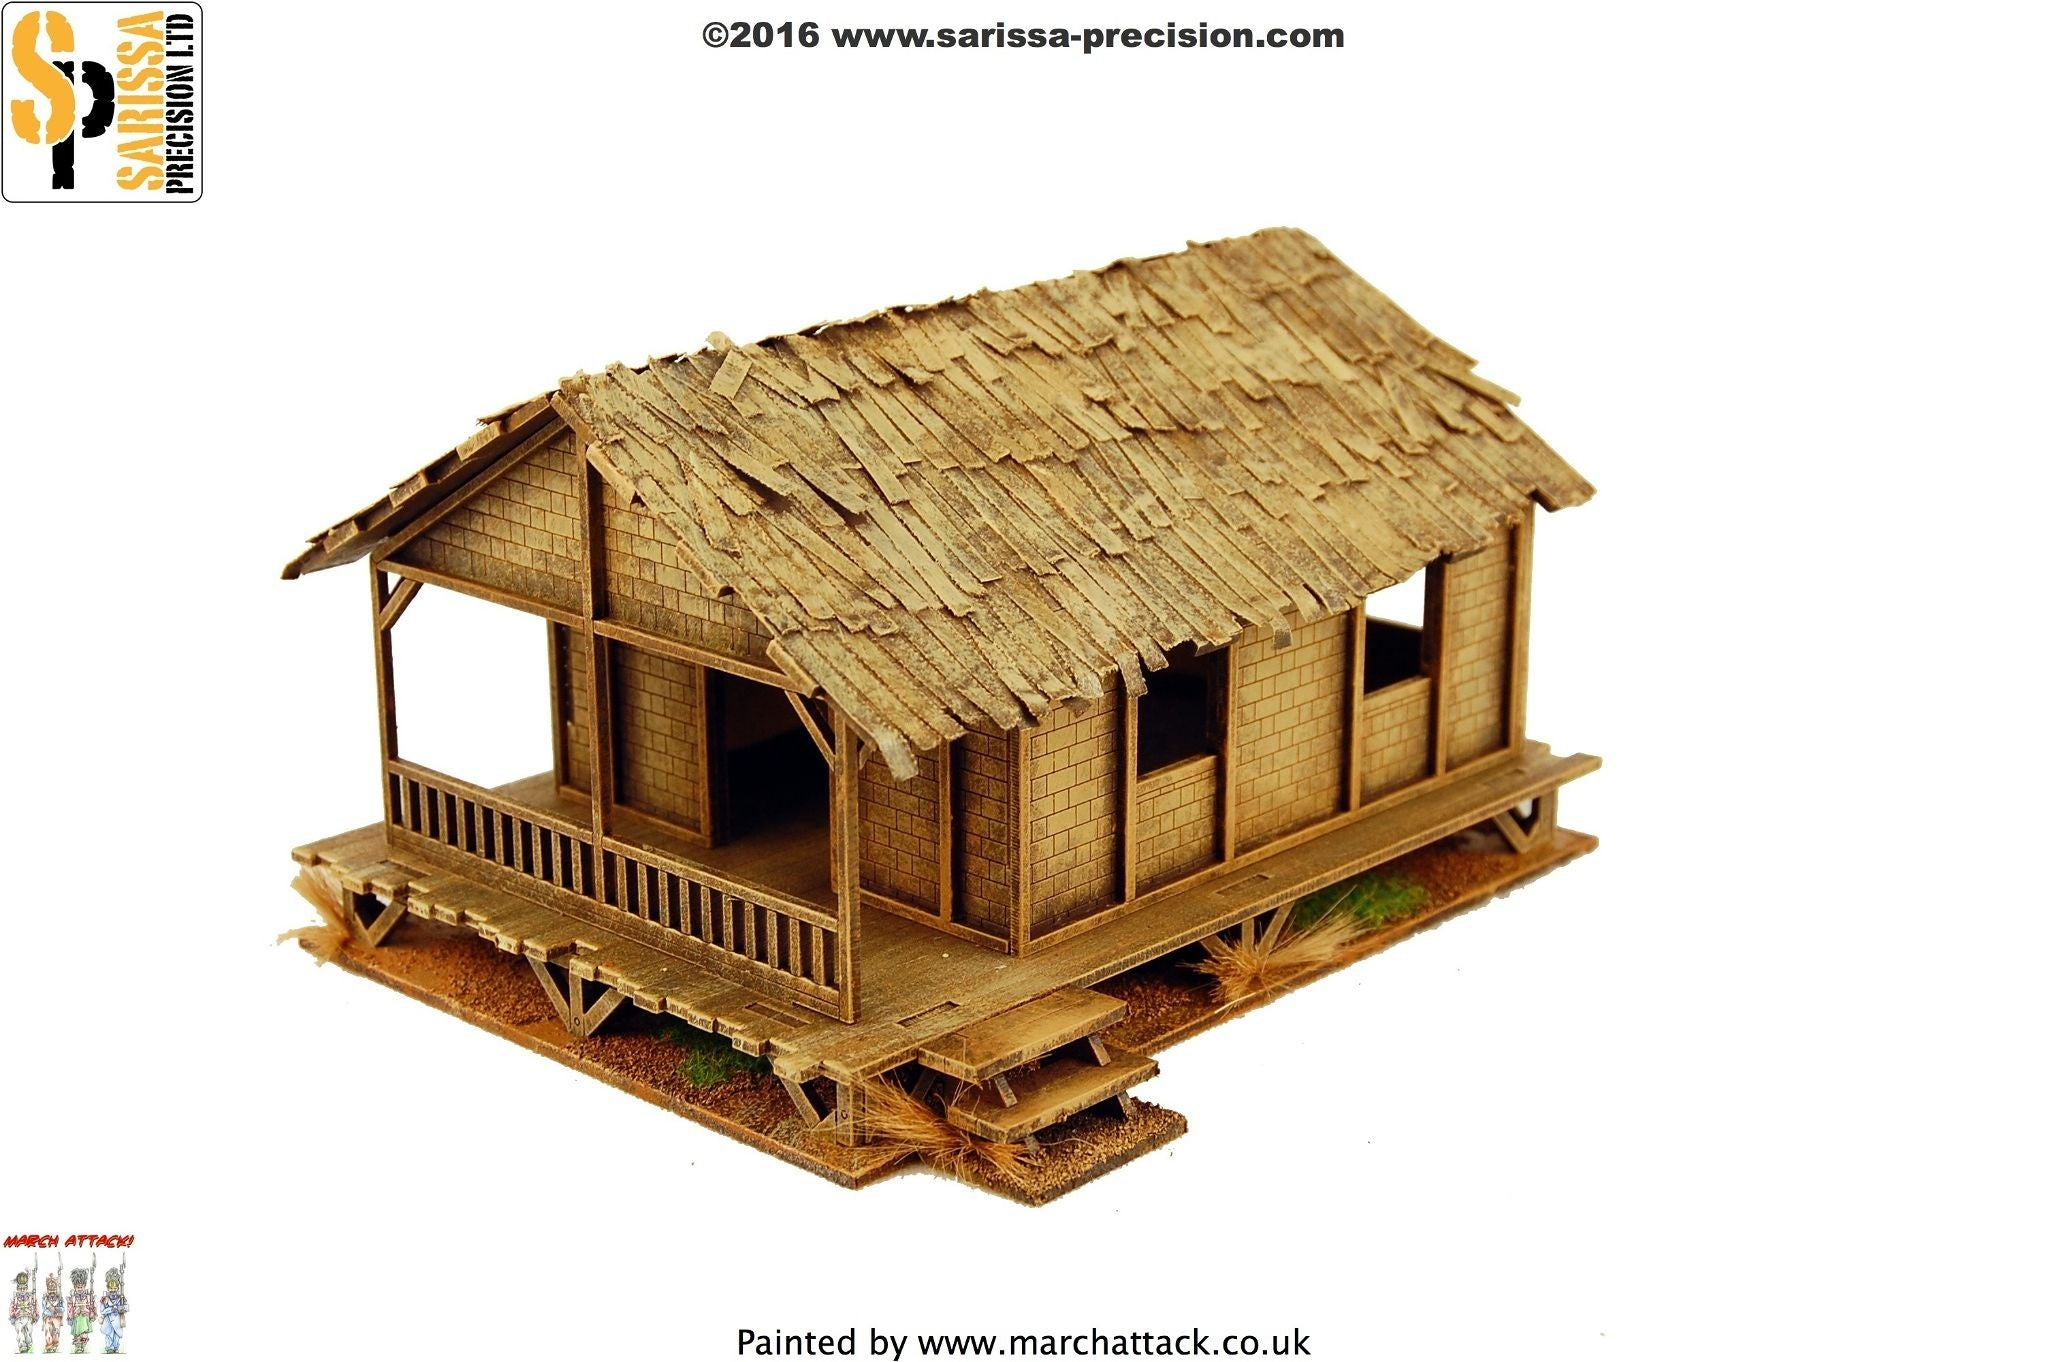 Low Woven Palm-Style Village House  - 20mm